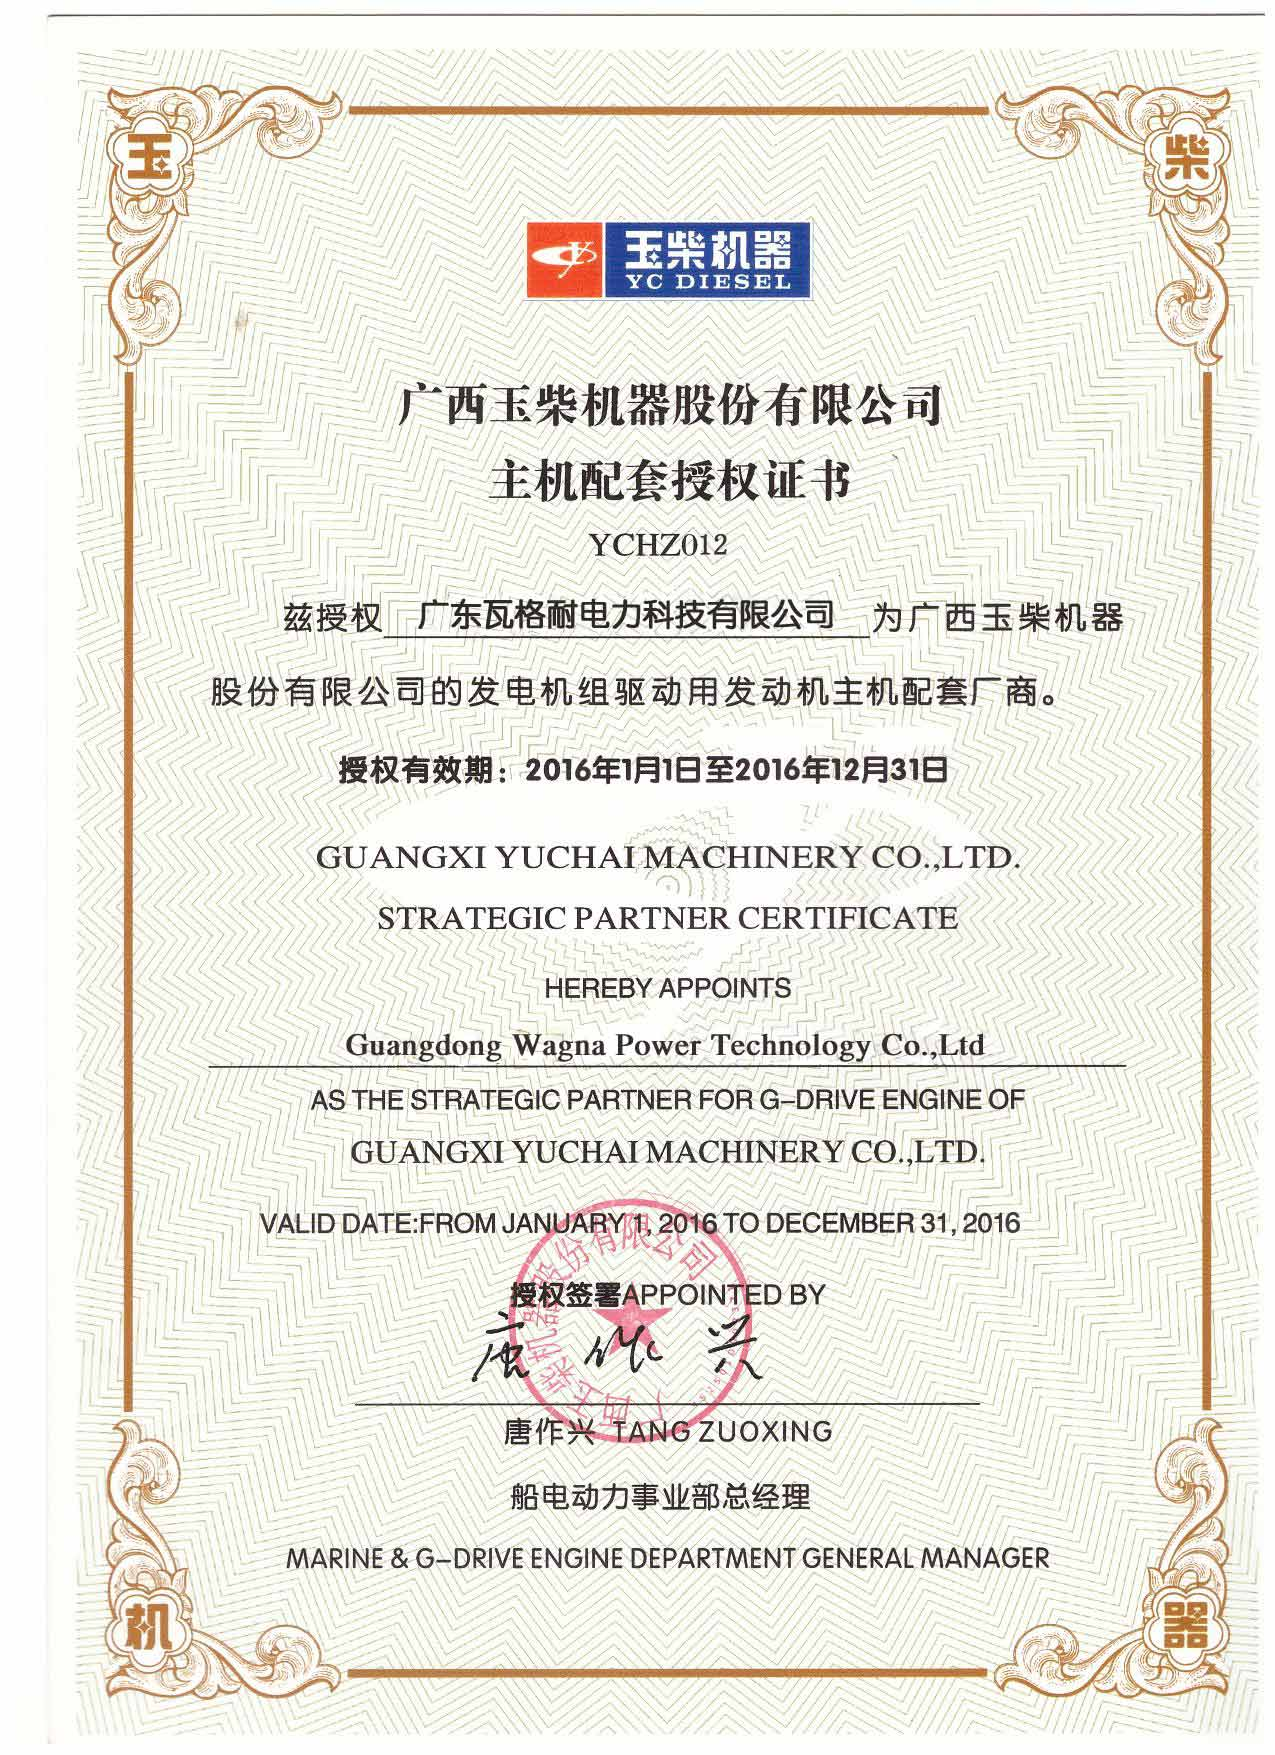 GuangXi Yuchai machinery Co.,ltd strategic partner certificate.